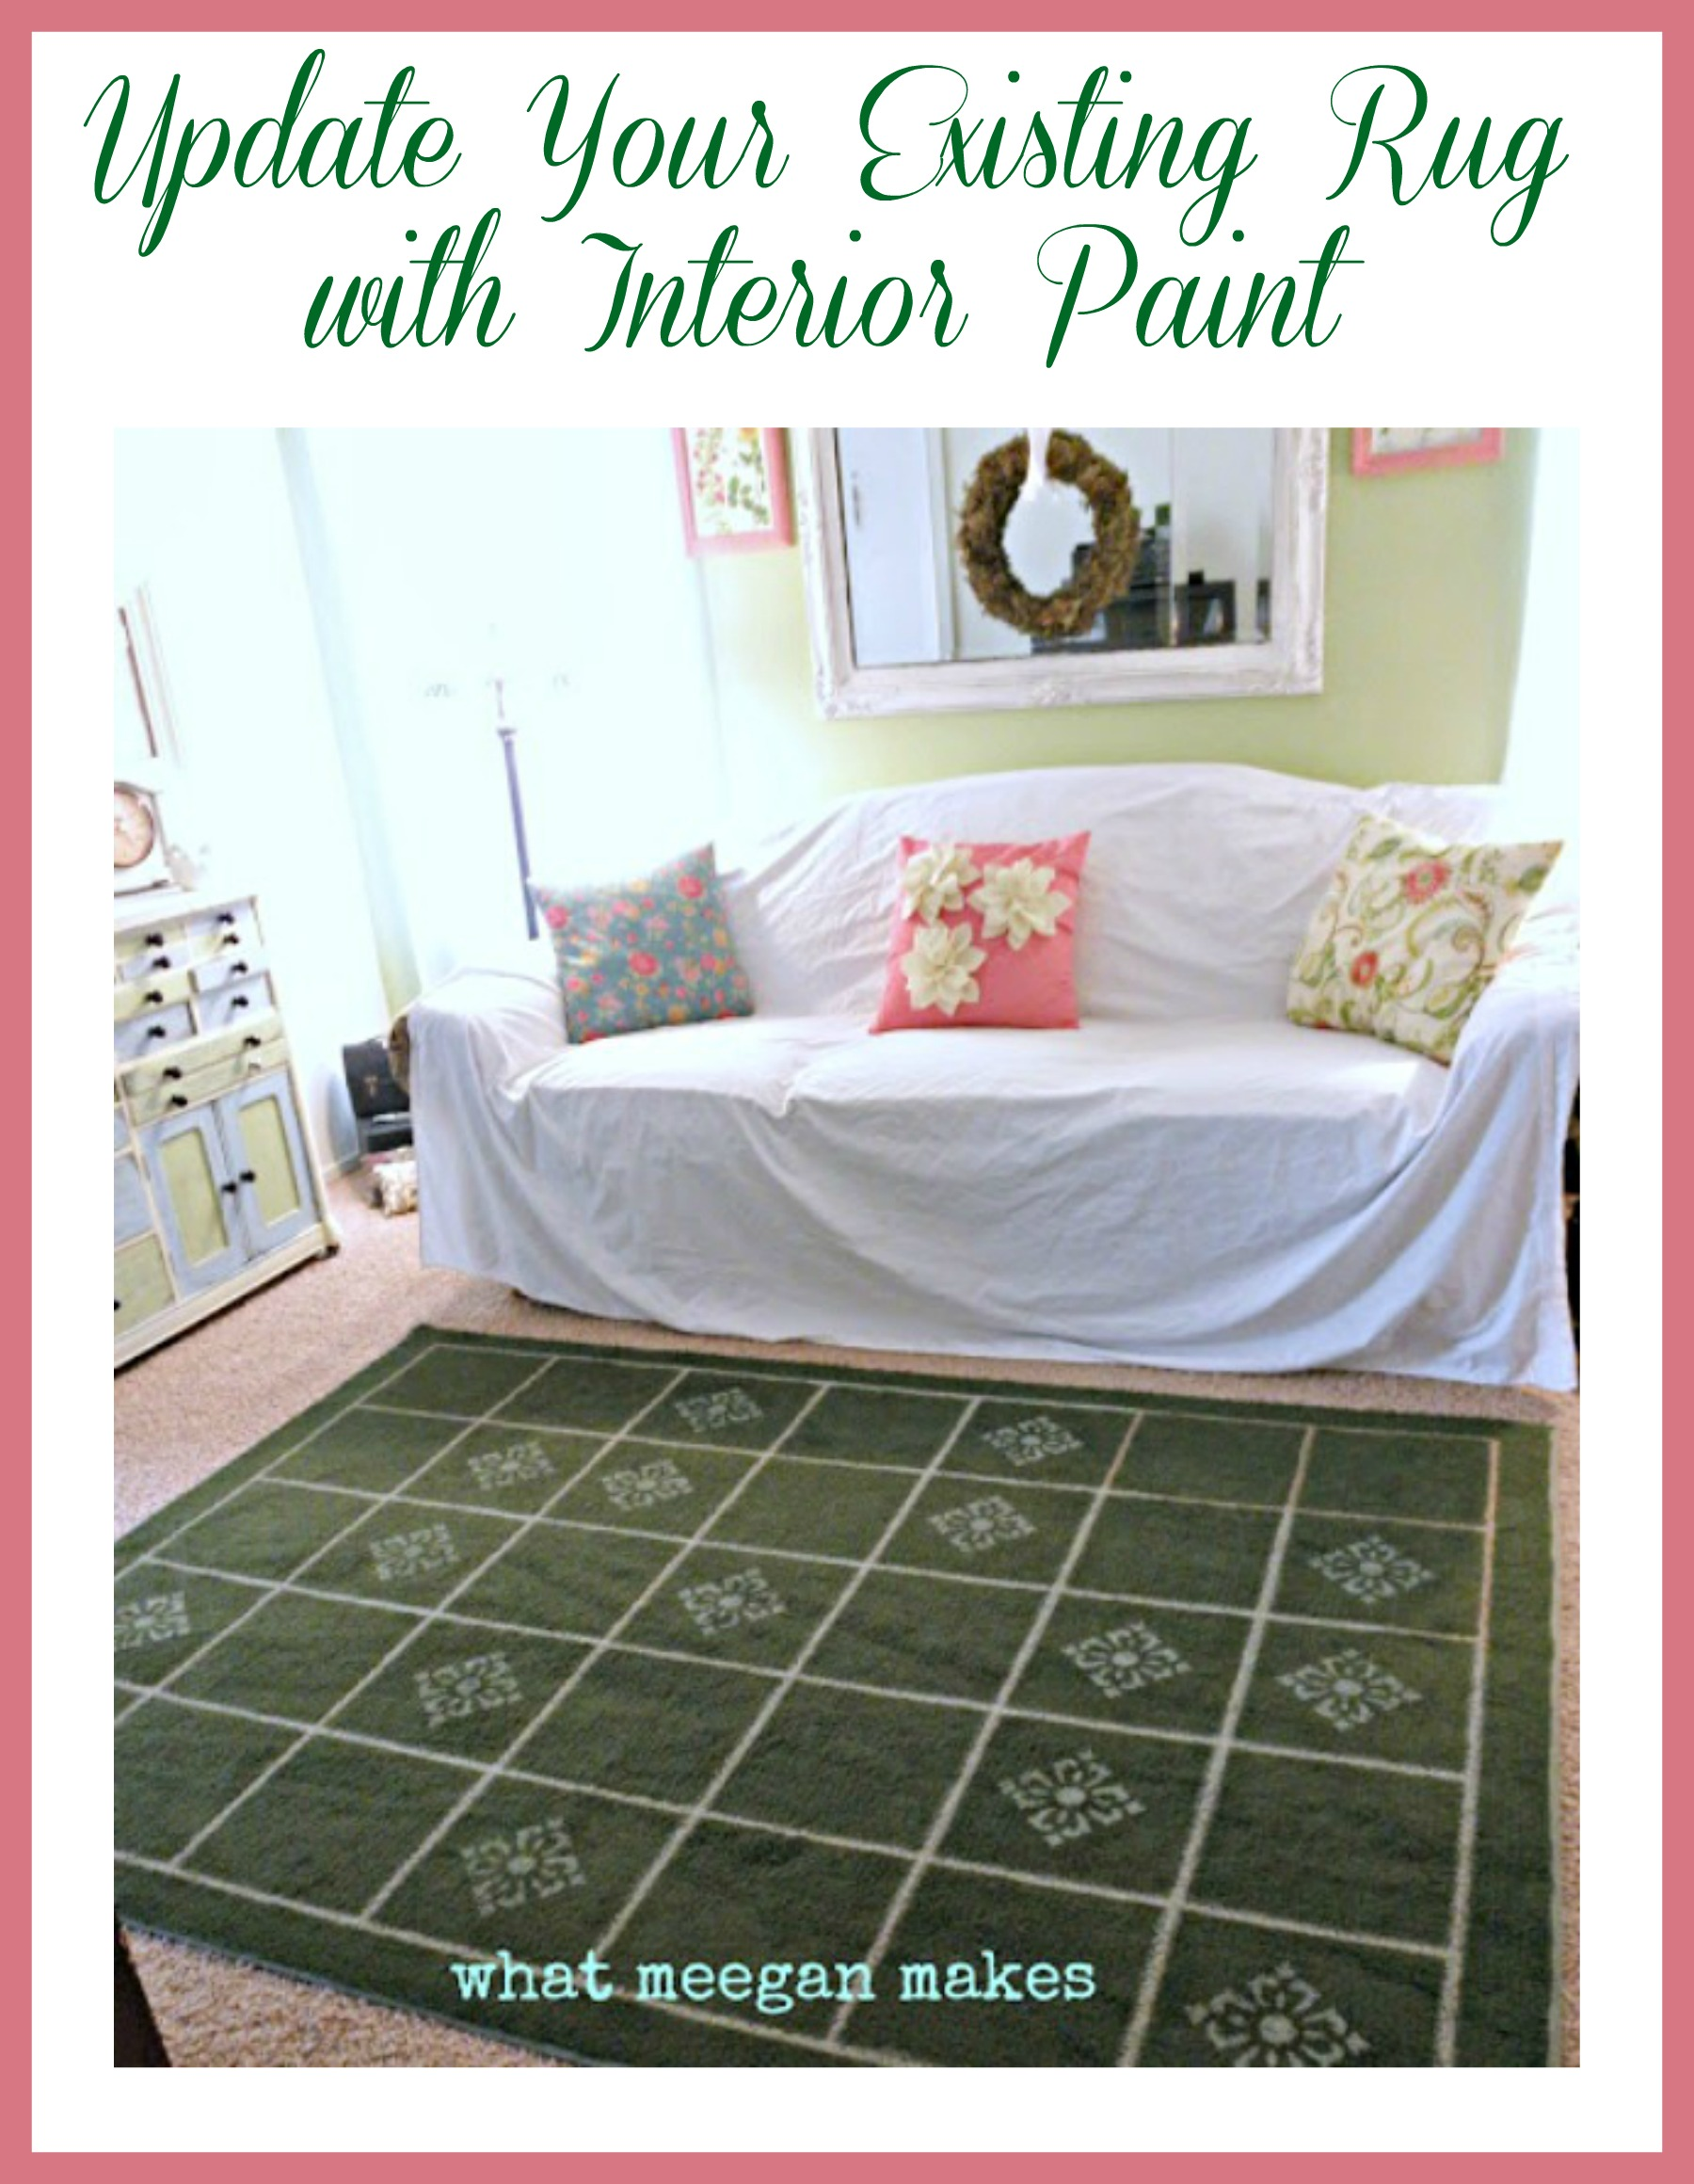 Update Your Existing Rug with Interior Paint